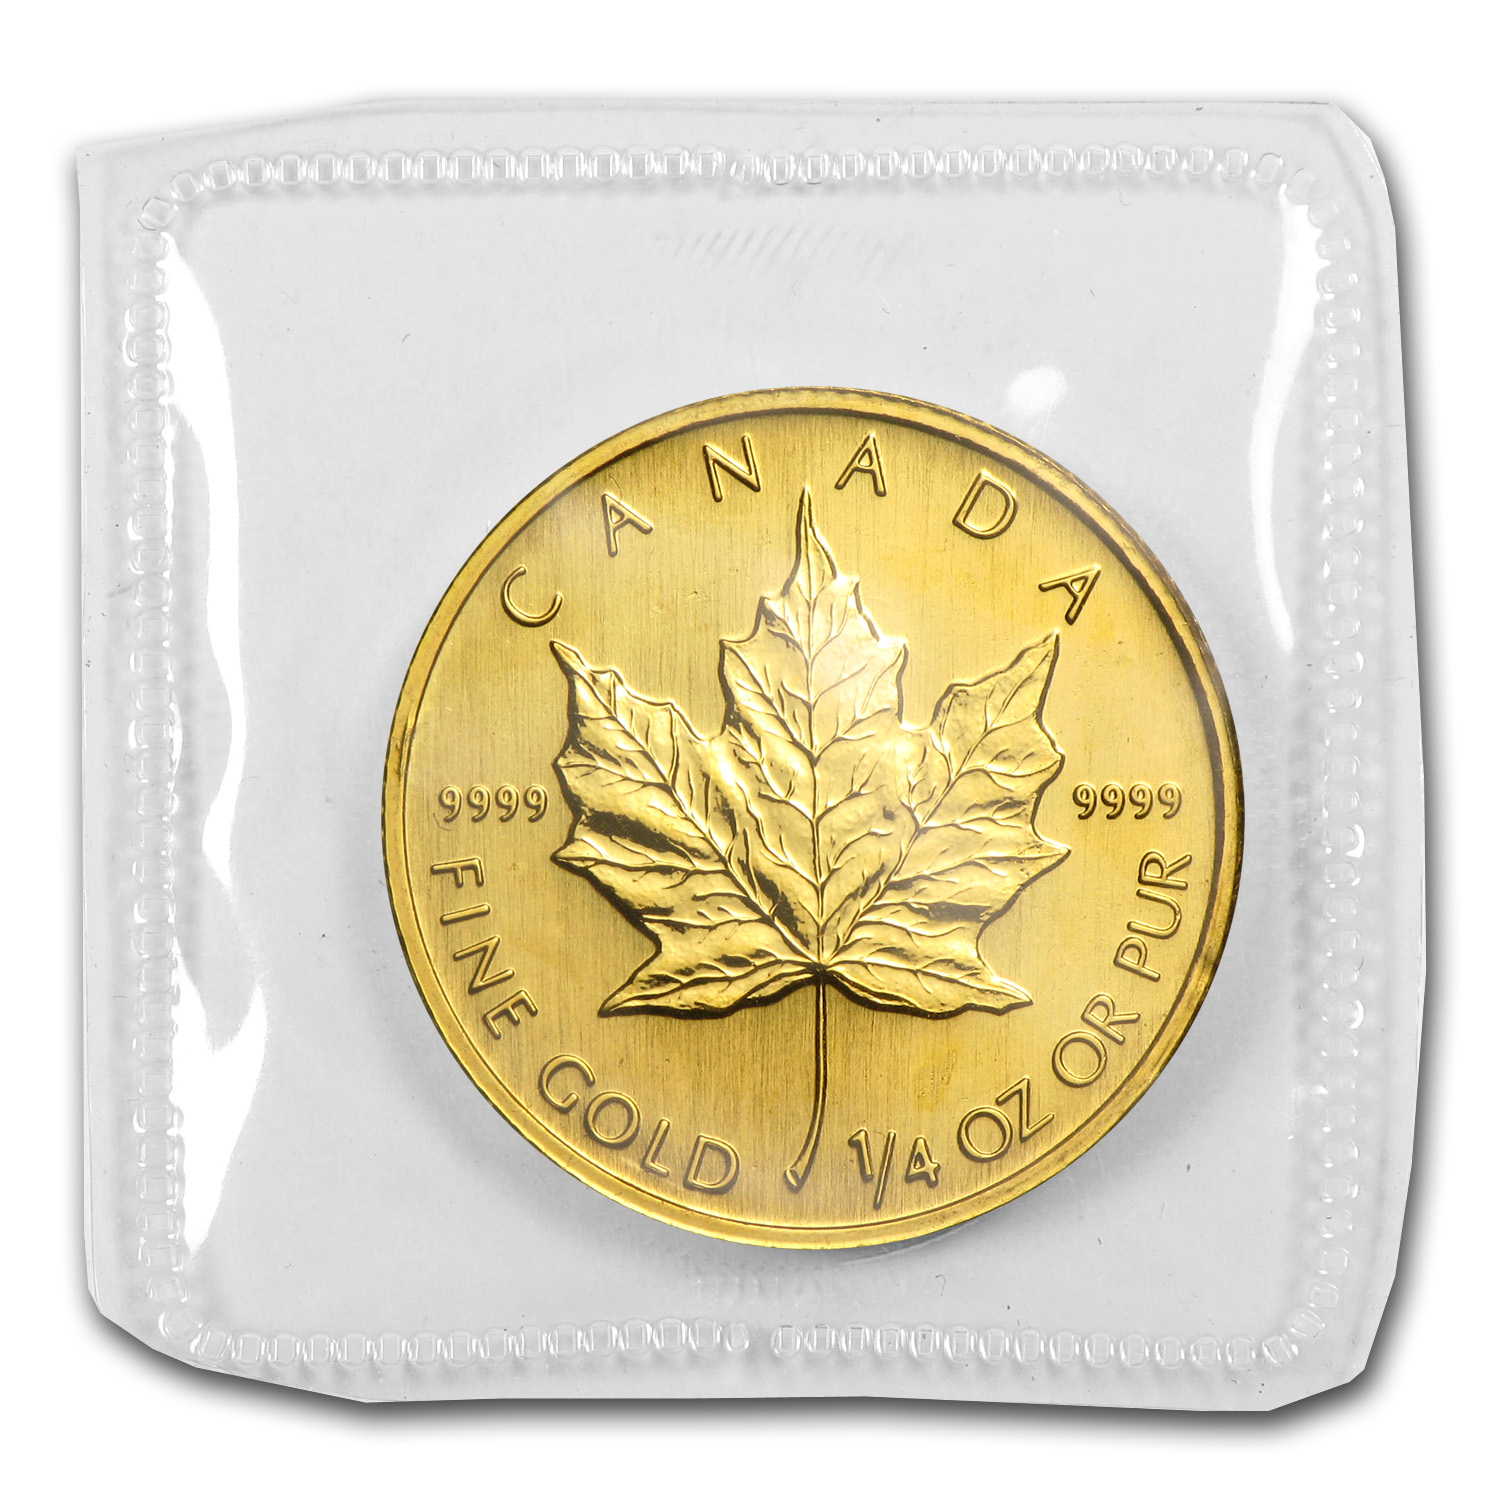 1998 1/4 oz Gold Canadian Maple Leaf